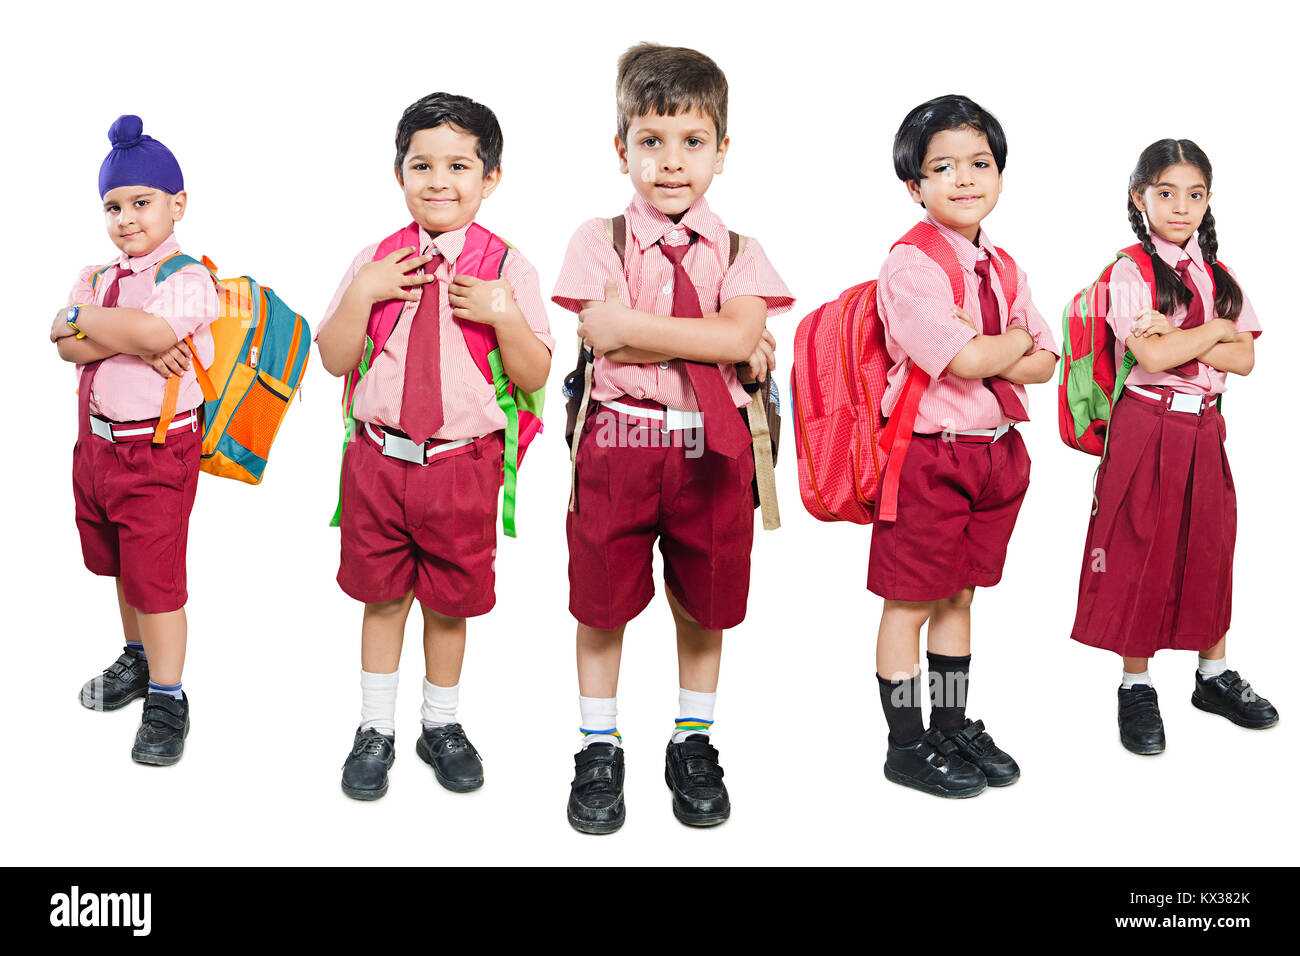 Group Indian School Kids Students Friends Arms Crossed Together Stock Photo Alamy